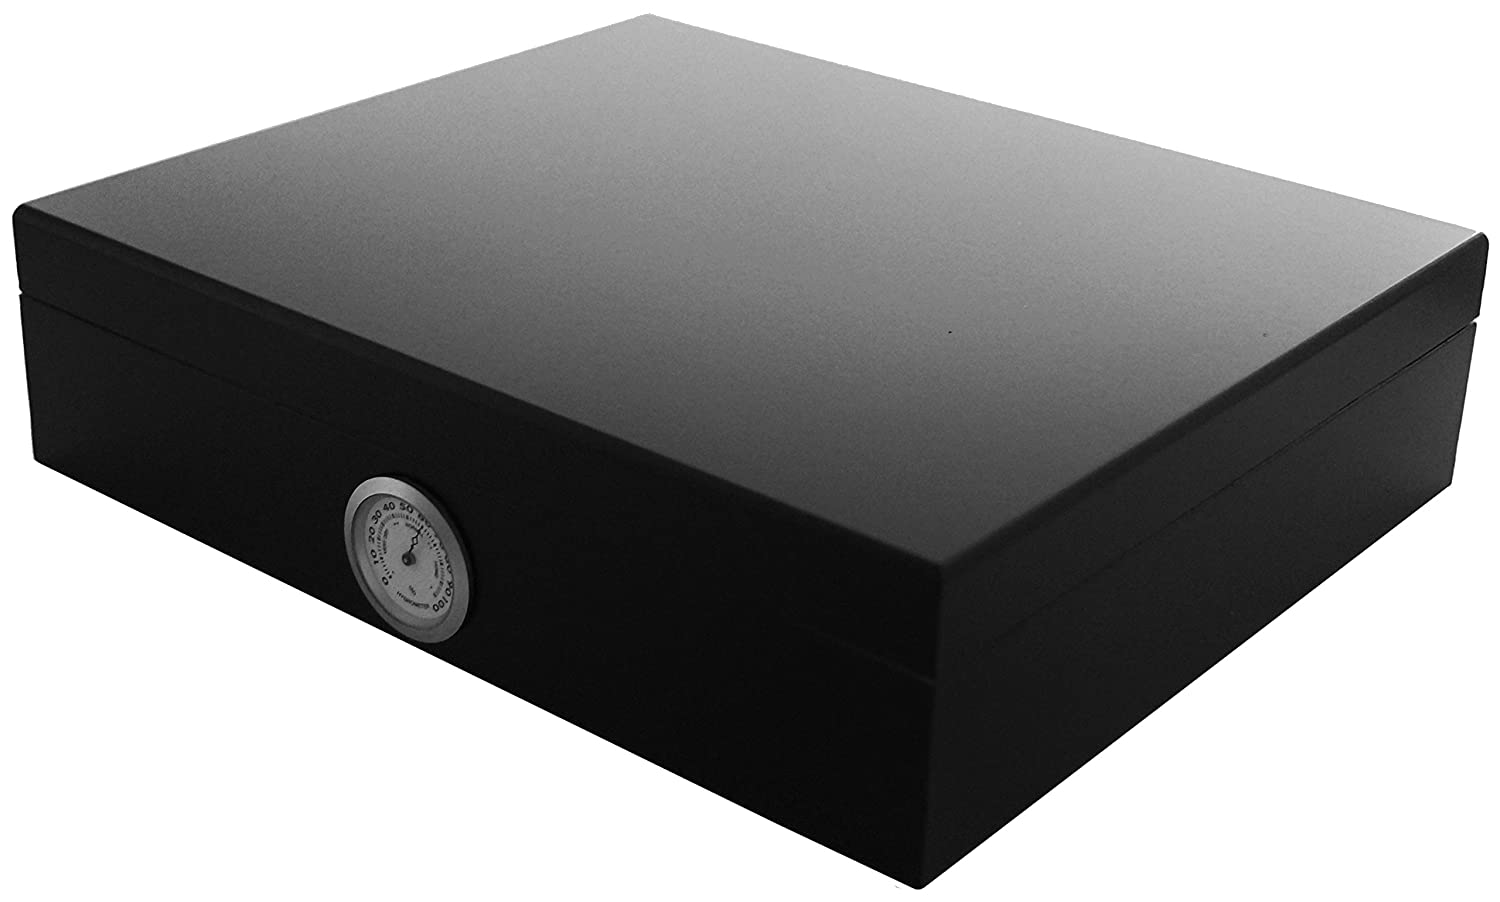 GERMANUS Cigar Humidor for approx. 30 Cigars, Black, with Hygrometer and Humidifier and GERMANUS Manual